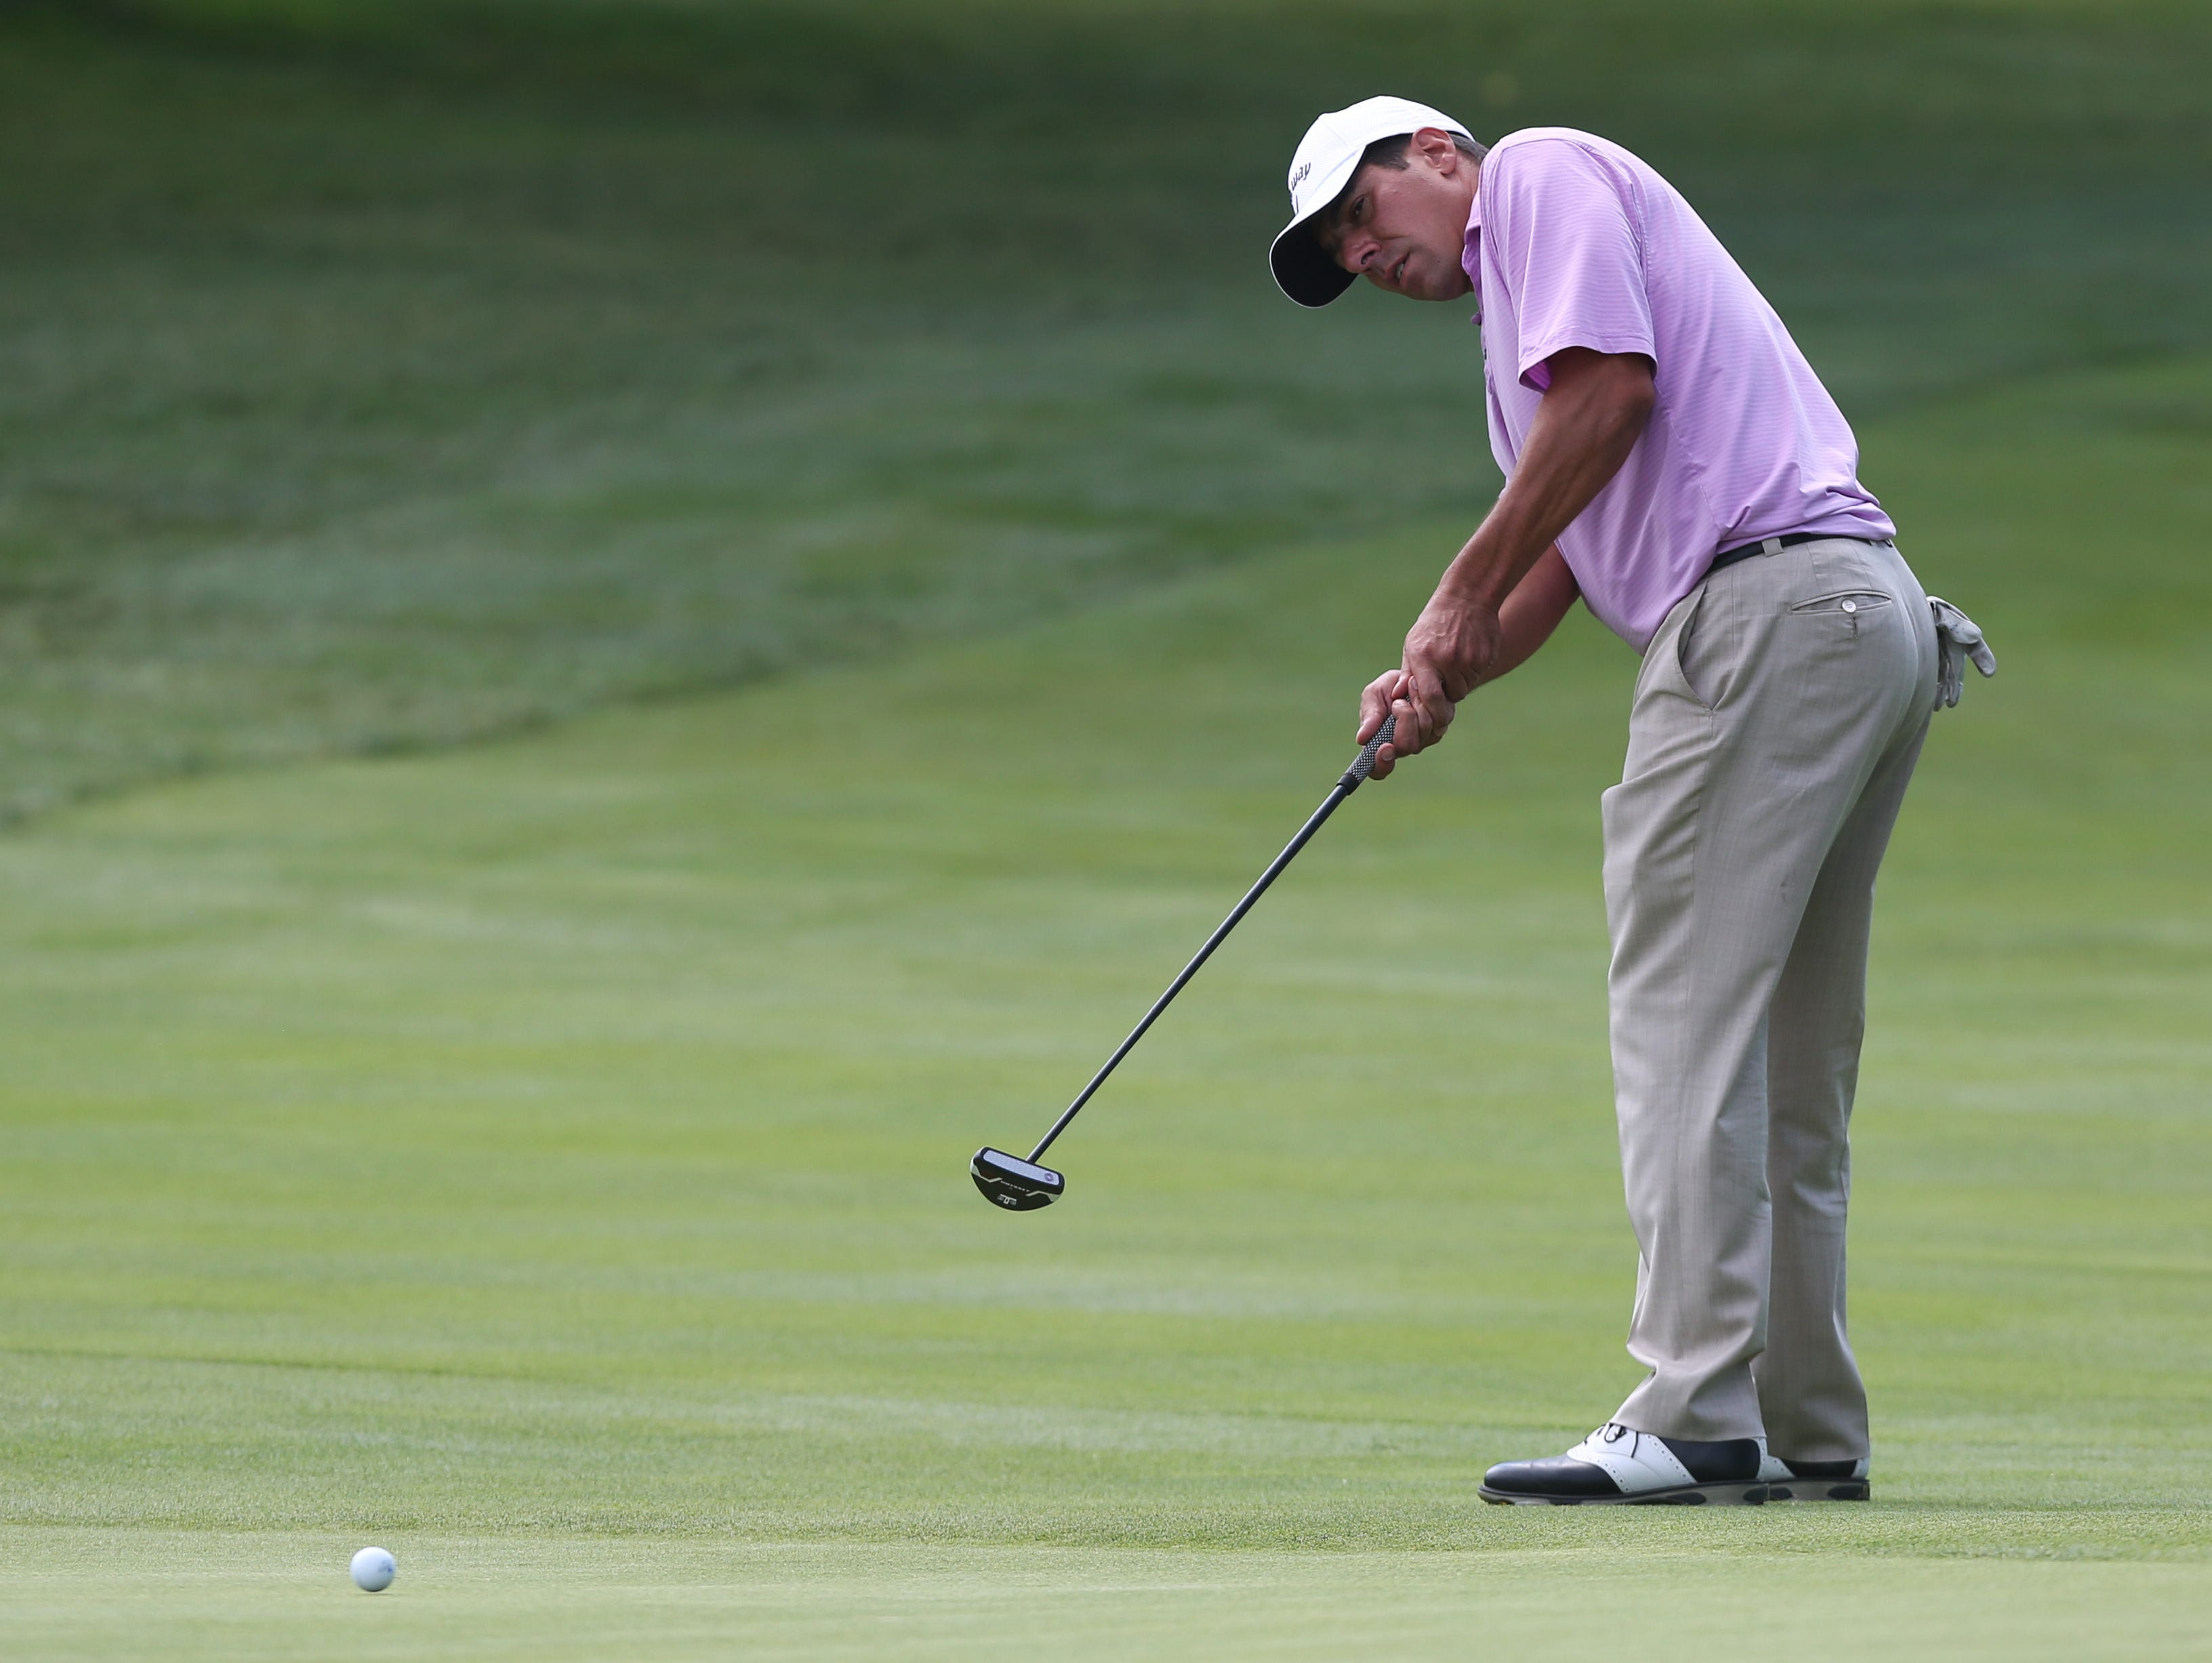 Charlie Meola, of Saxon Woods Golf Course, putts on the 18th green during the Metropolitan PGA Professional Championship at Fairview Country Club in Greenwich, CT. Aug. 5, 2015.